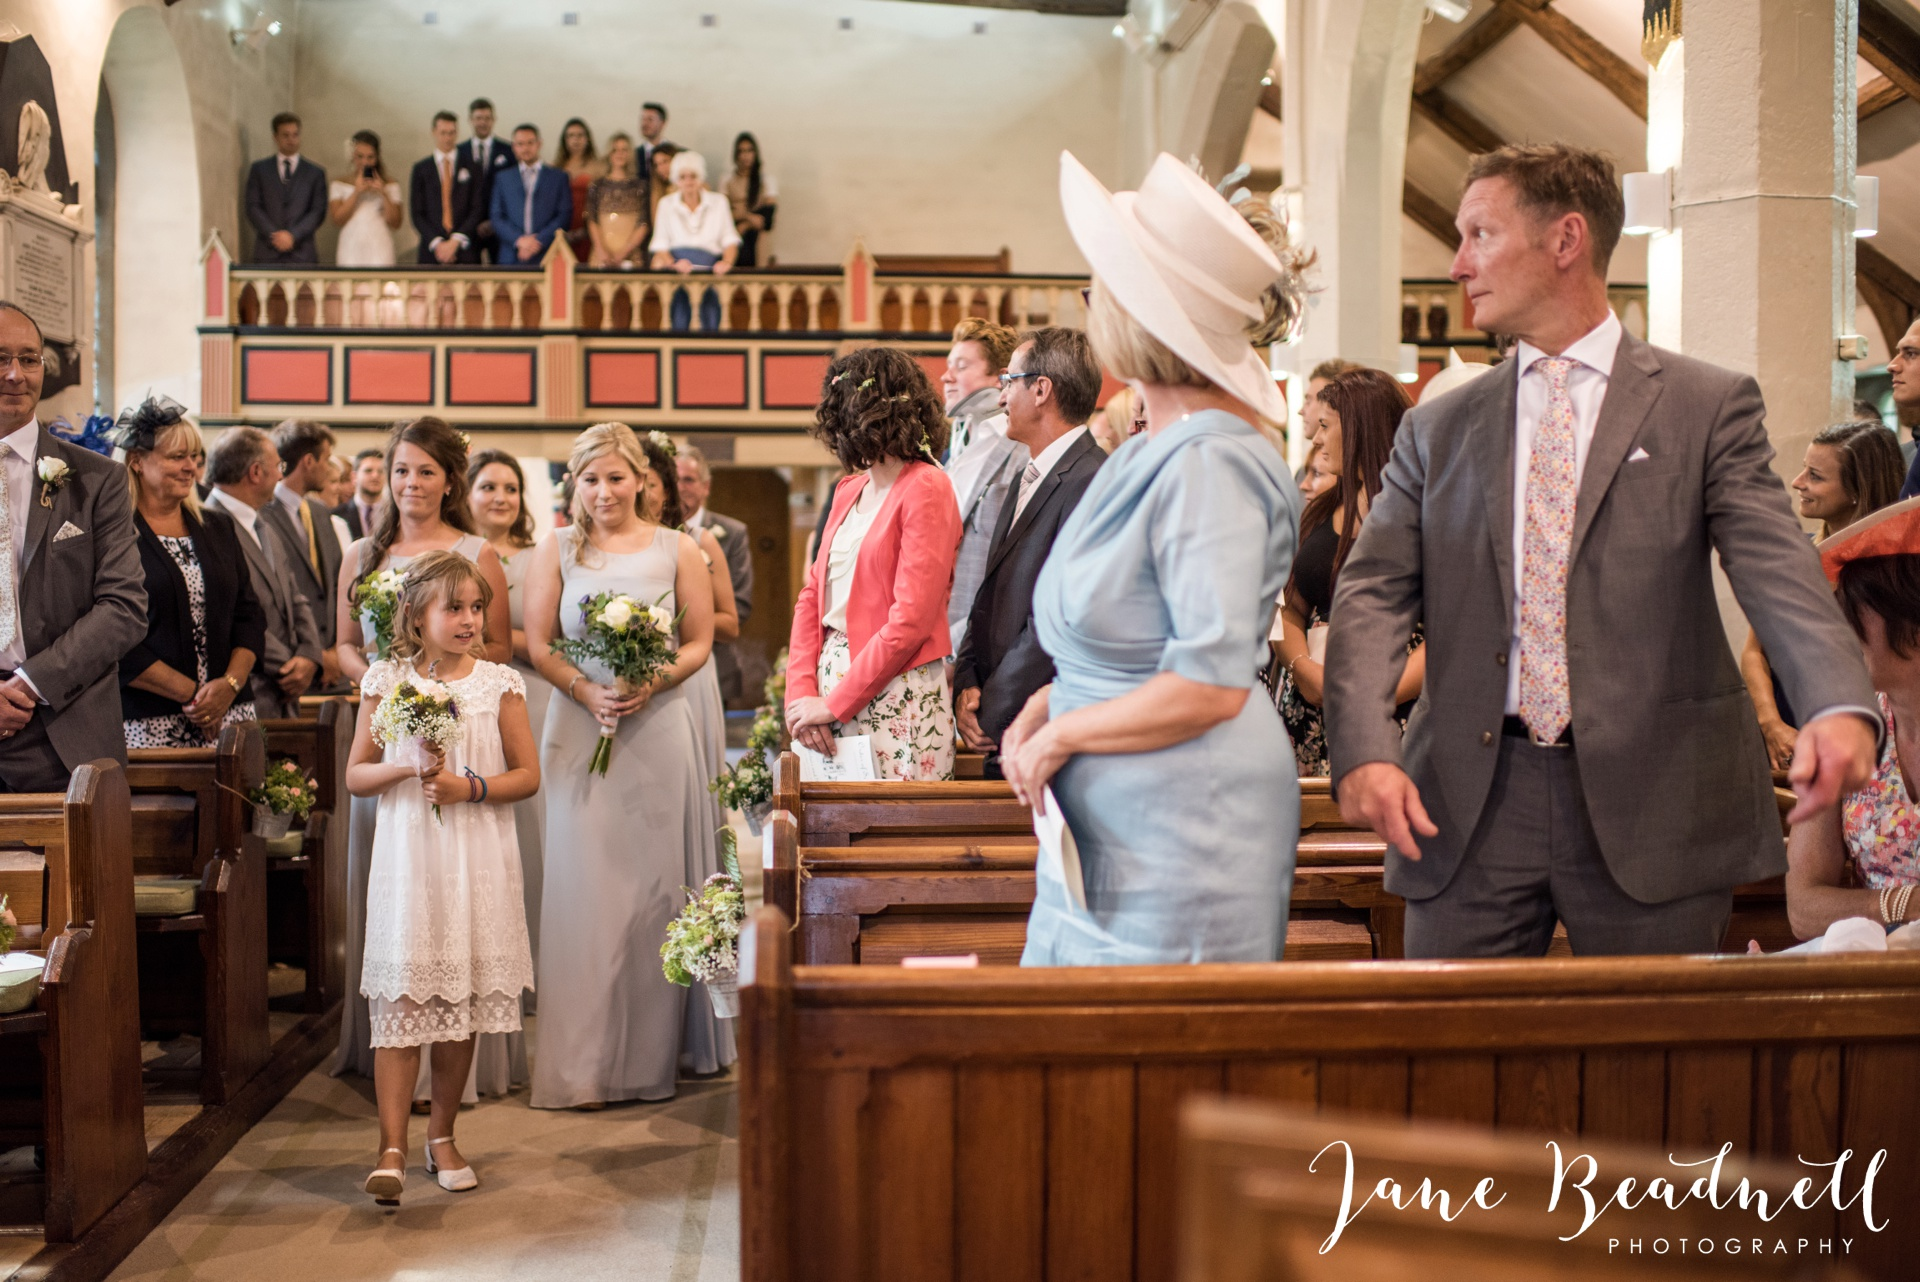 Jane Beadnell fine art wedding photographer Leeds_0036